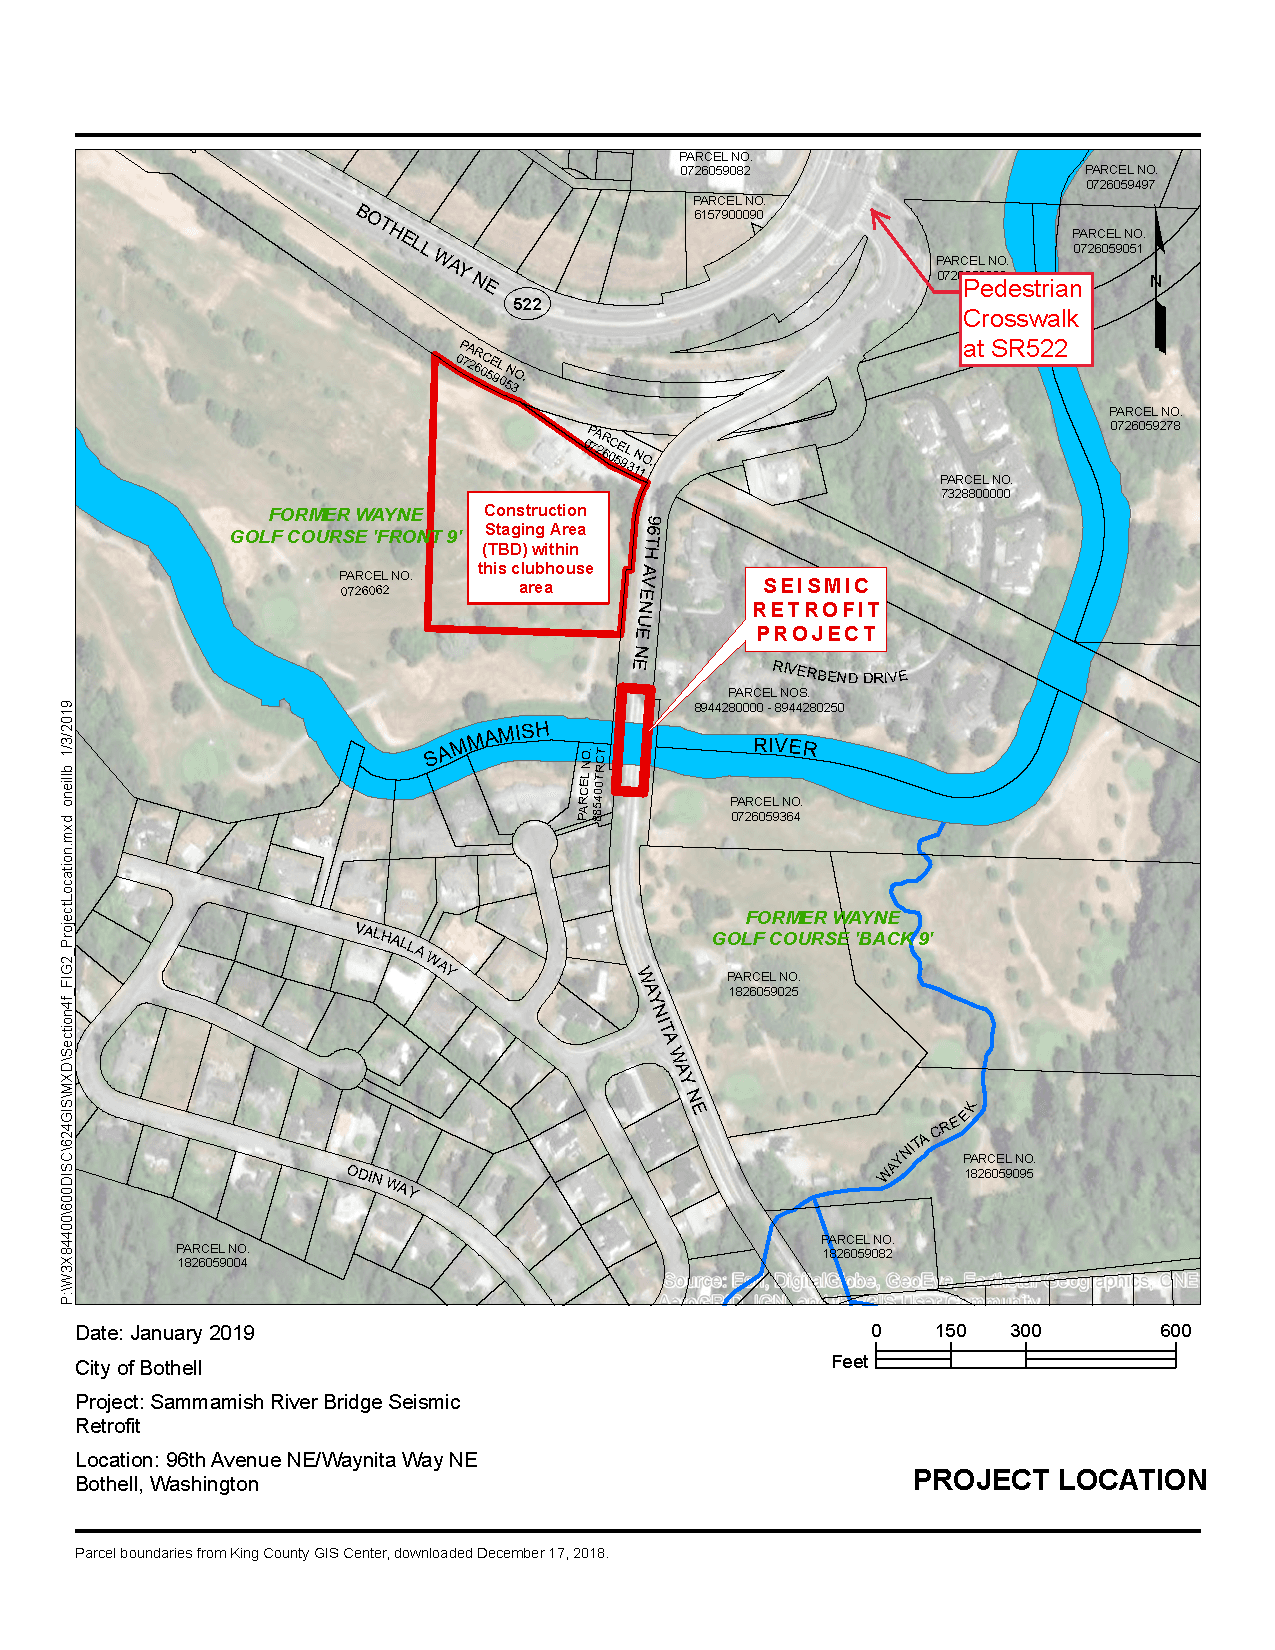 Sammamish River Seismic Retrofit Vicinity Map